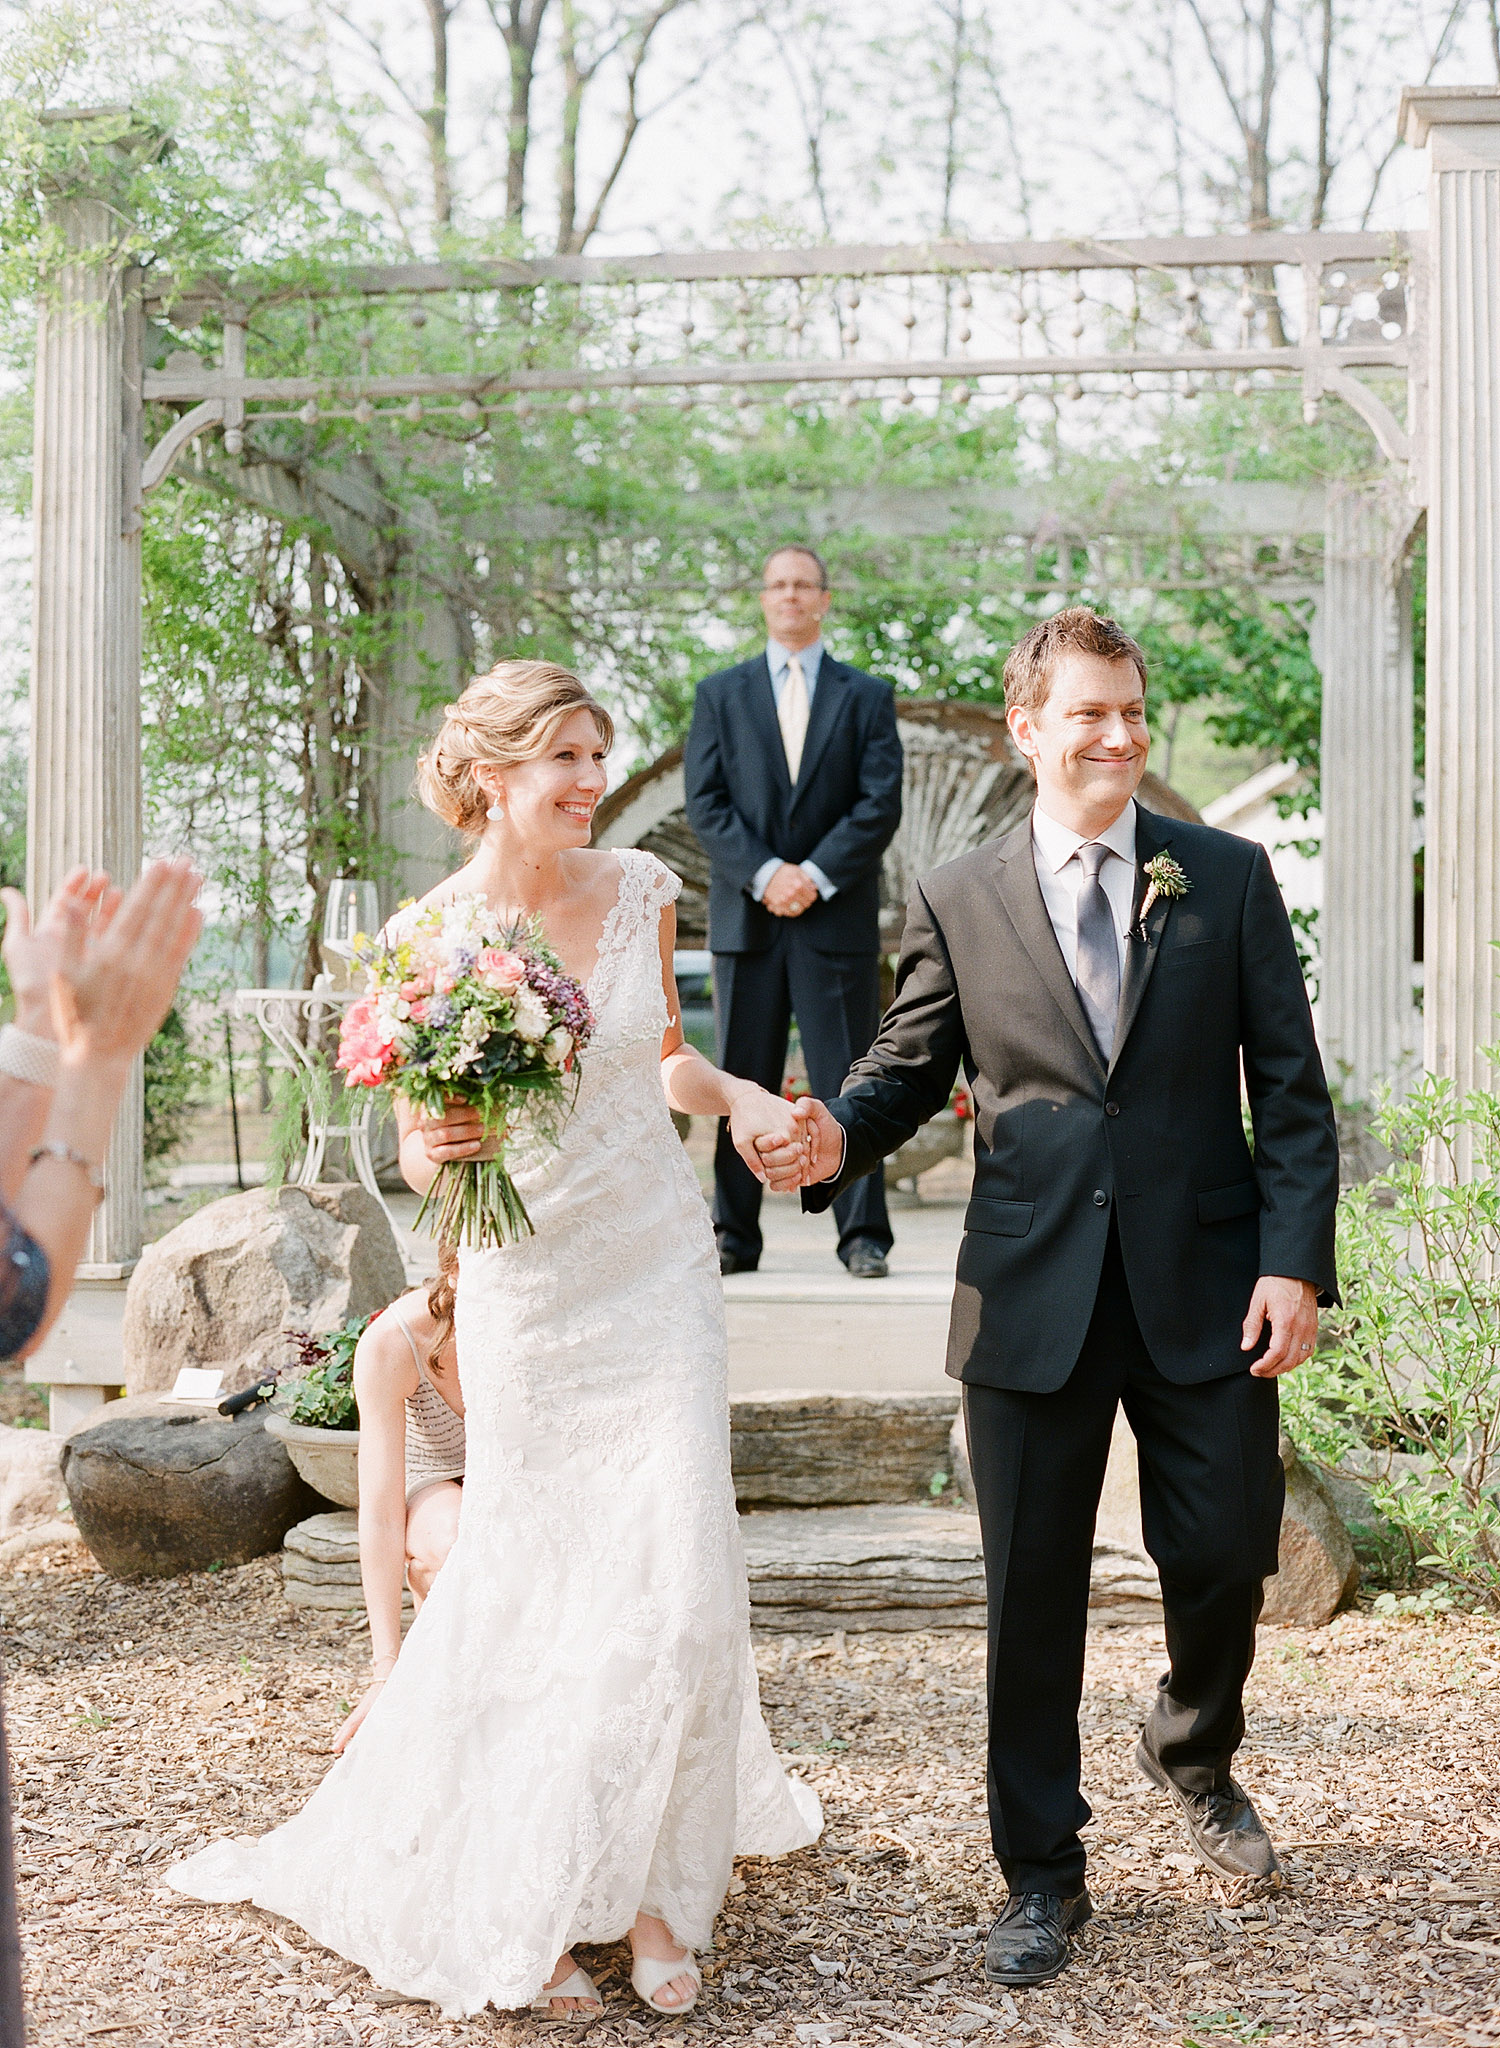 bride and groom walk down the aisle at this springtime wedding at Northwind Perennial Garden - a beautiful wisconsin wedding venue - while Destination wedding photographer Lexia Frank Photographs this wedding on film